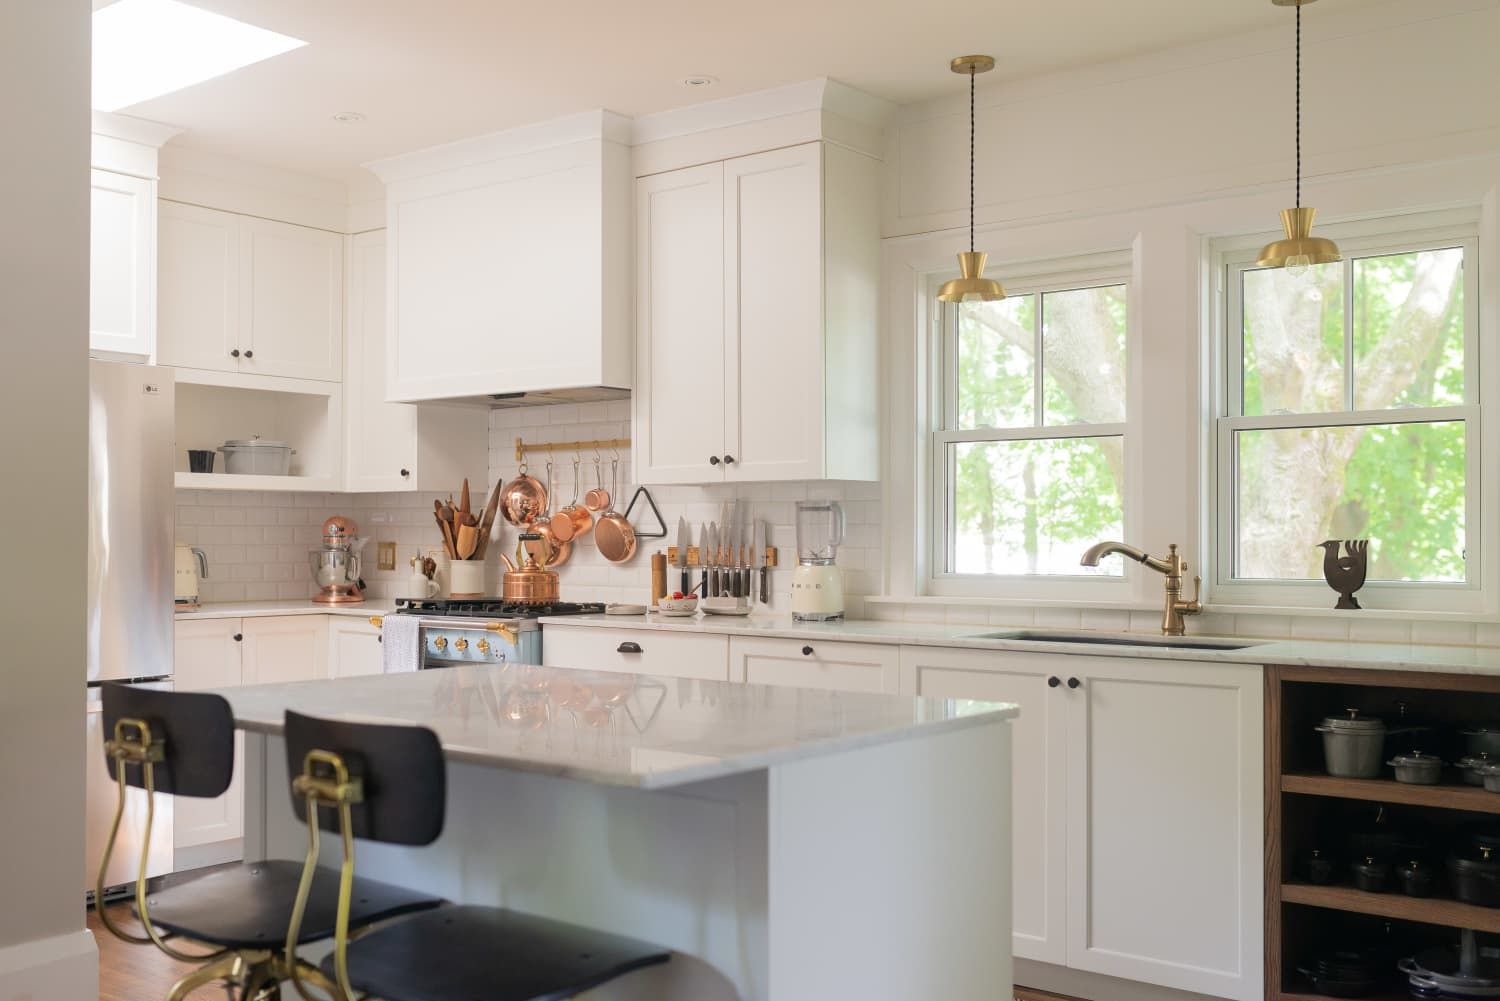 8 Ways To Deal With Those Awkward Kitchen Cabinet Soffits